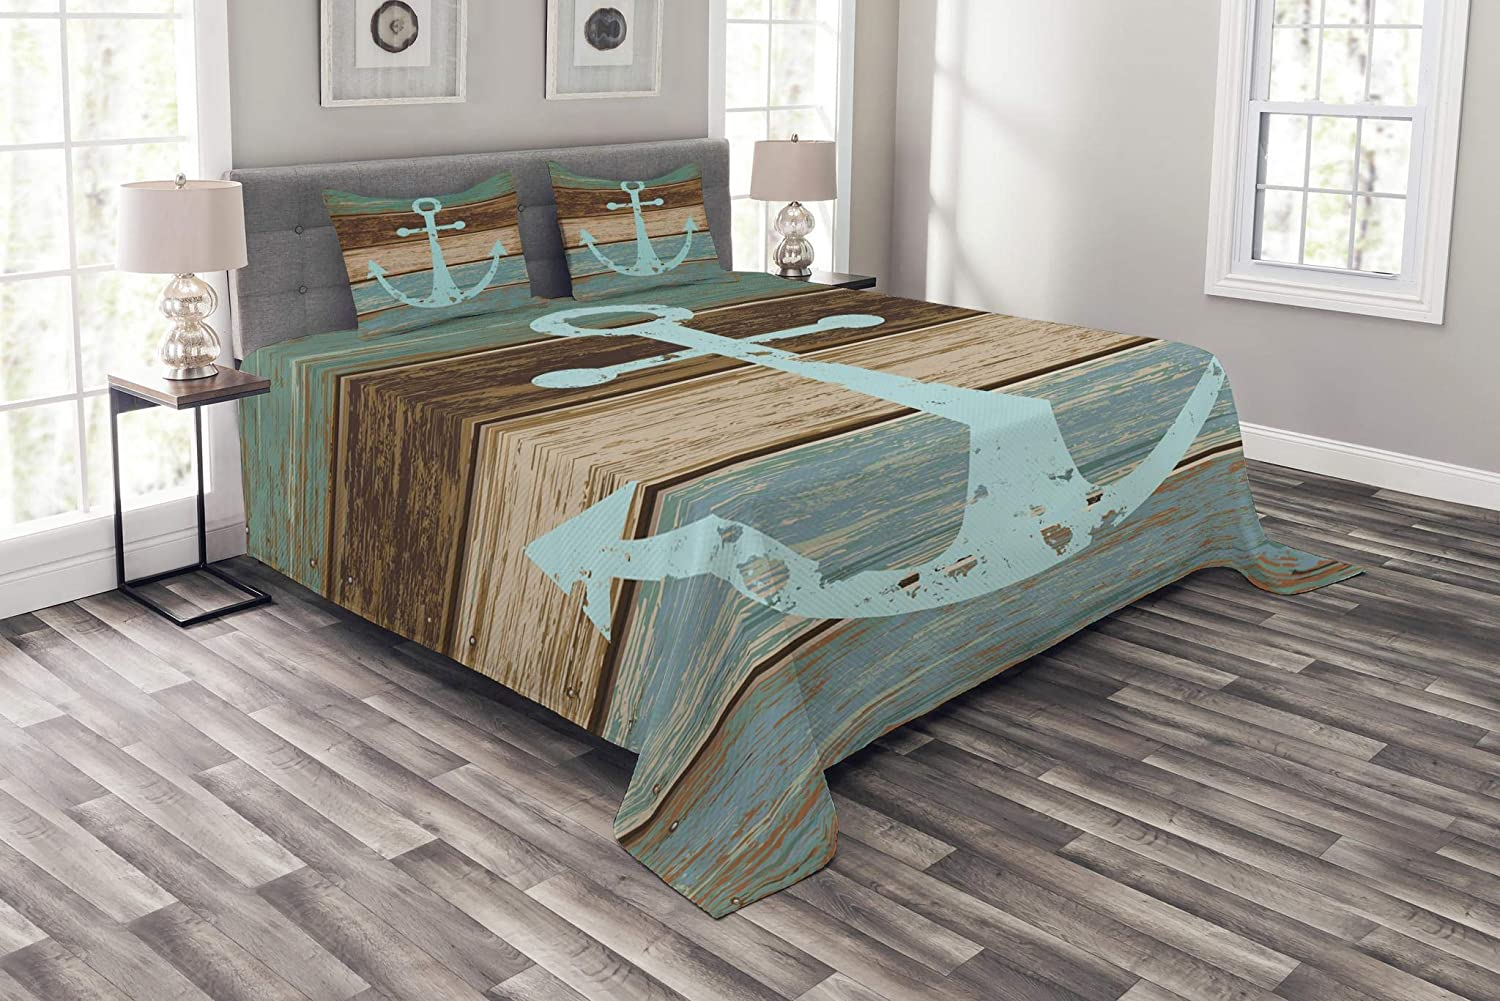 Ambesonne Anchor Bedspread, Timeworn Marine on Weathered Wooden Planks Rustic Nautical Theme, Decorative Quilted 3 Piece Coverlet Set with 2 Pillow Shams, Queen Size, Teal Brown